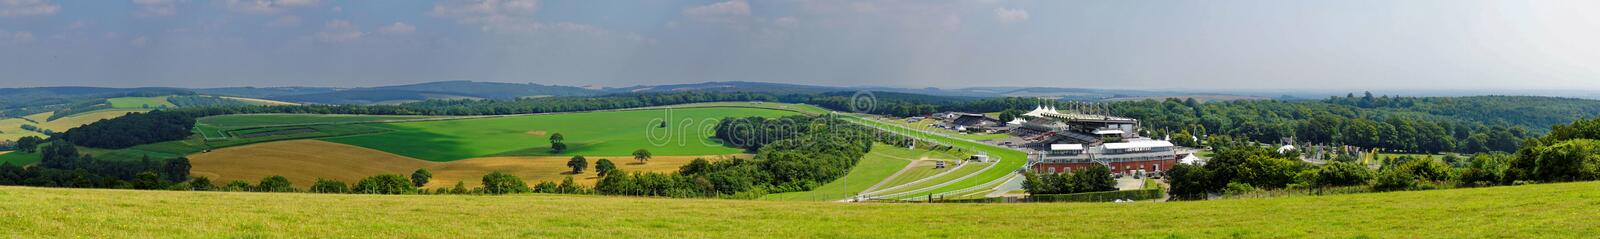 Panorama von prachtvollem Goodwood stockfotos